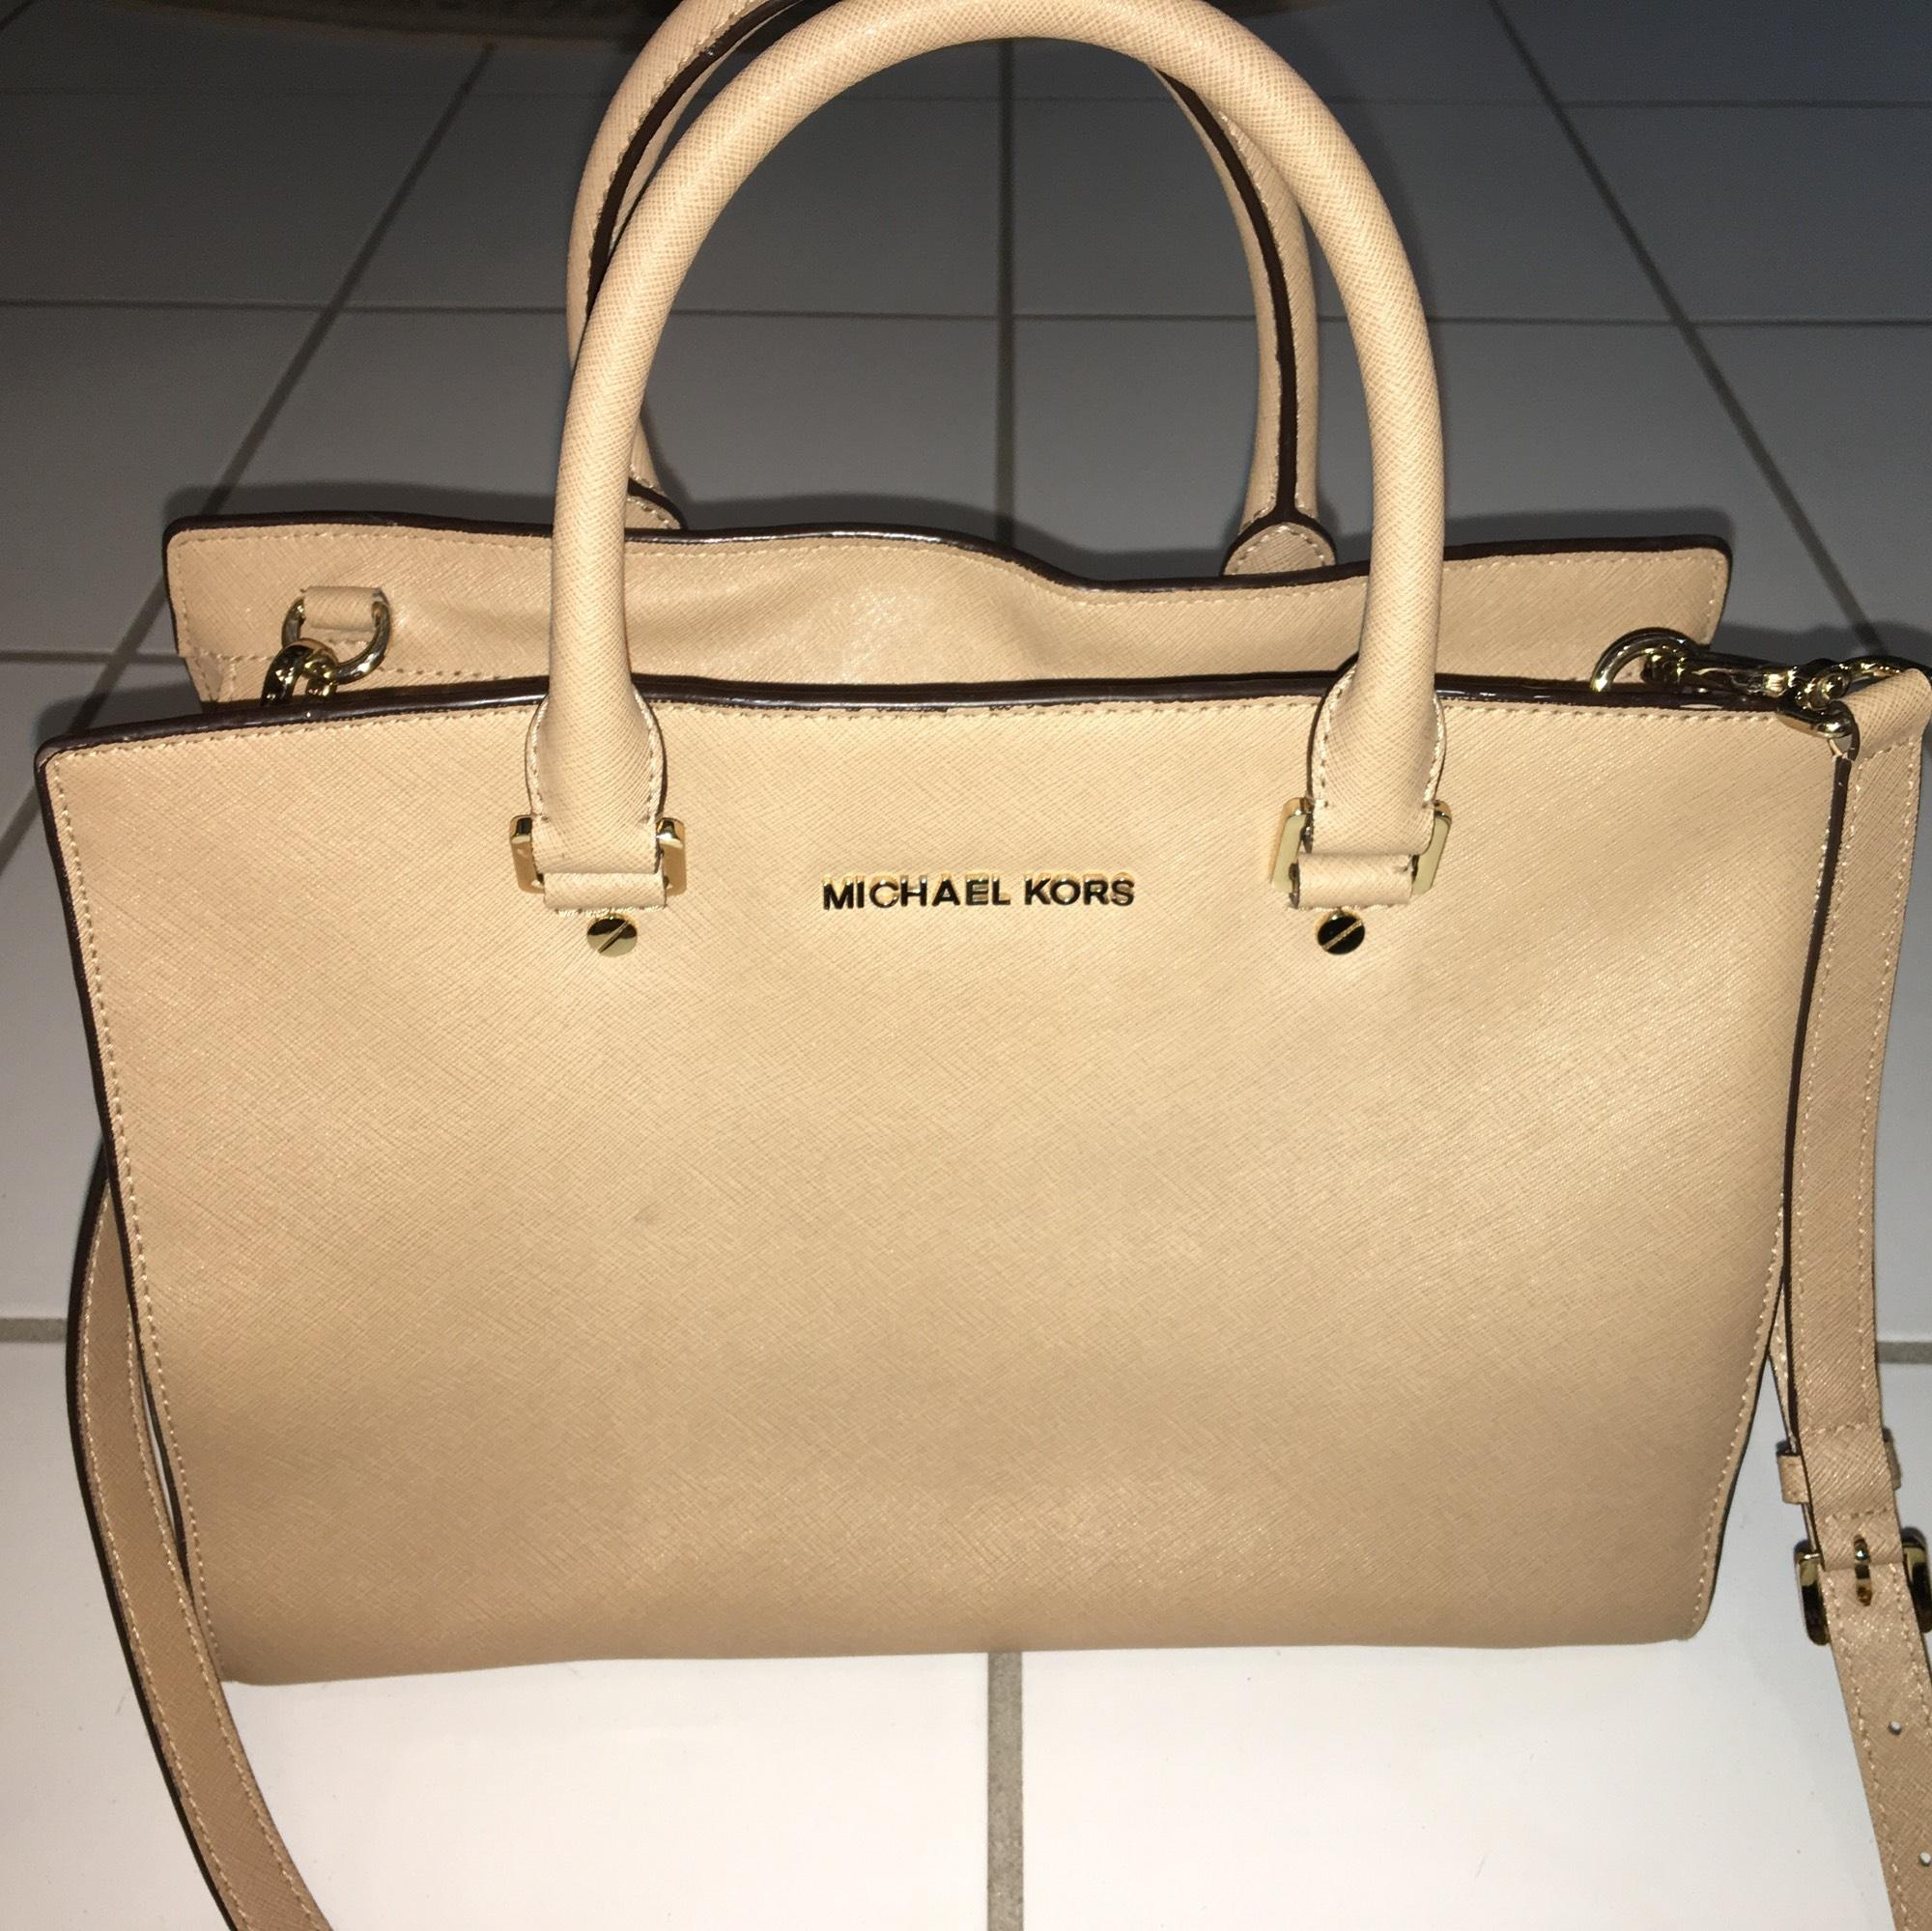 fda58497d3a2e5 coupon code for michael kors selma satchel taupe heights 2b5a5 1b8e3